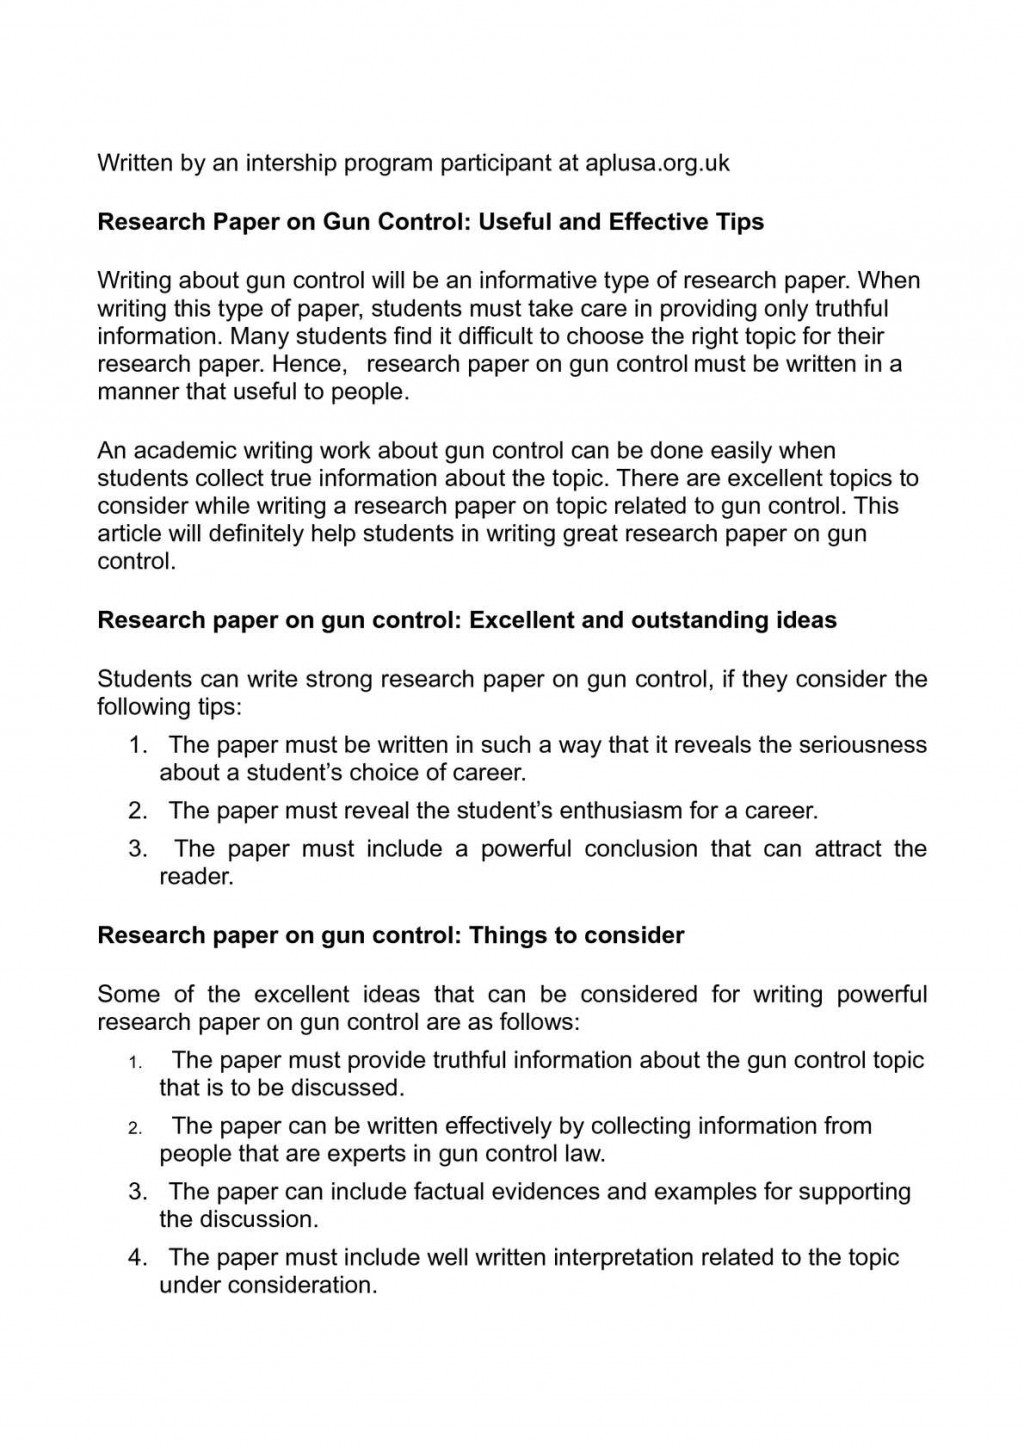 007 P1 Conclusion Ideas For Research Marvelous A Paper Large